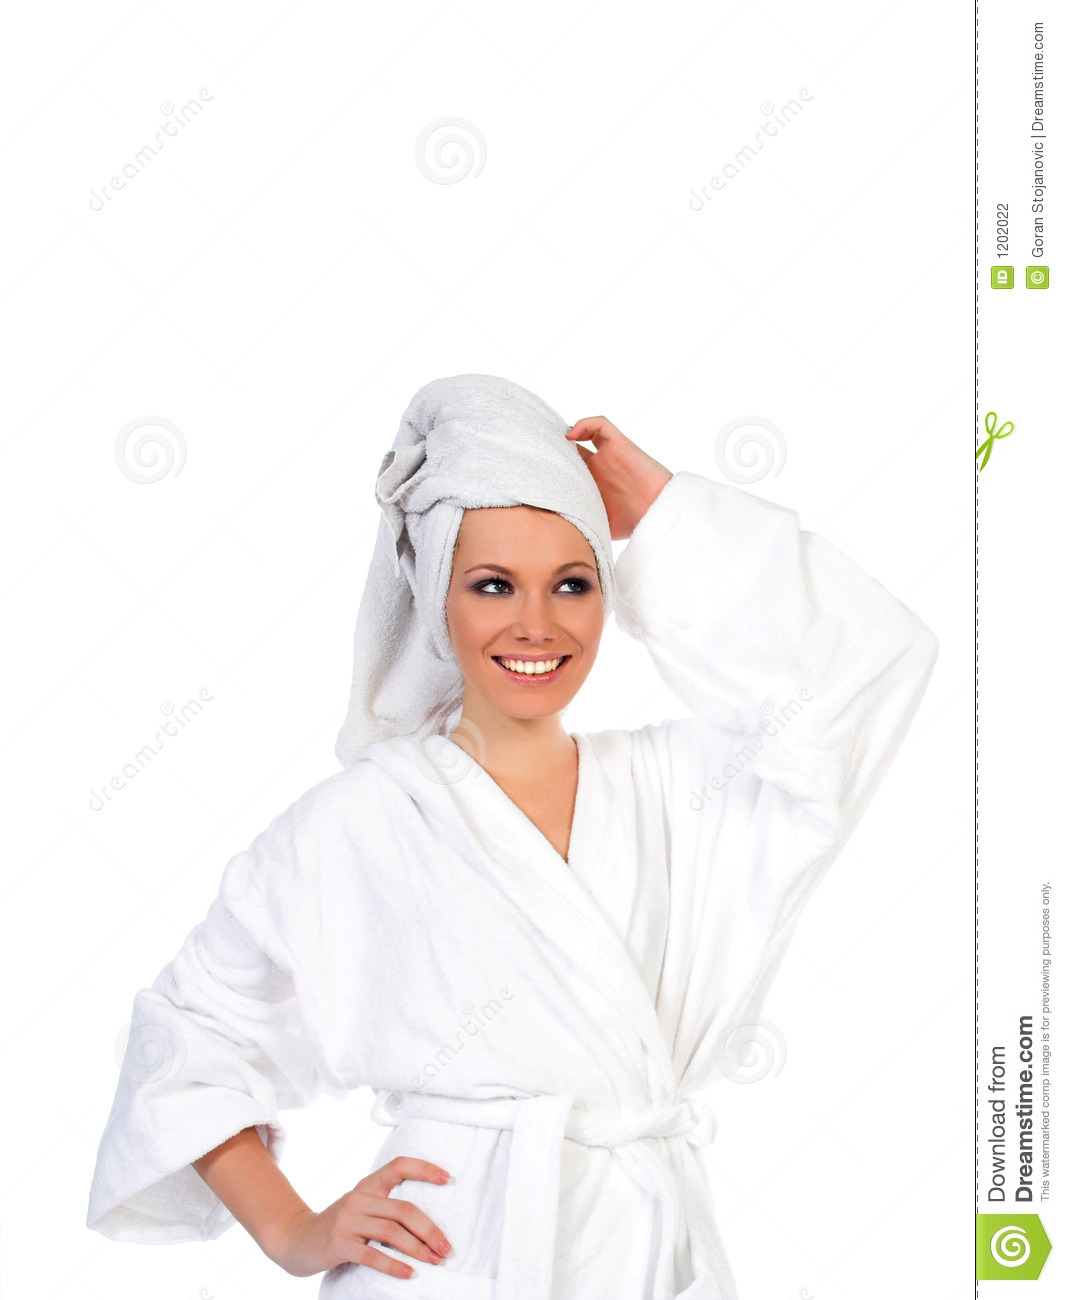 Woman smiling after relaxing bath